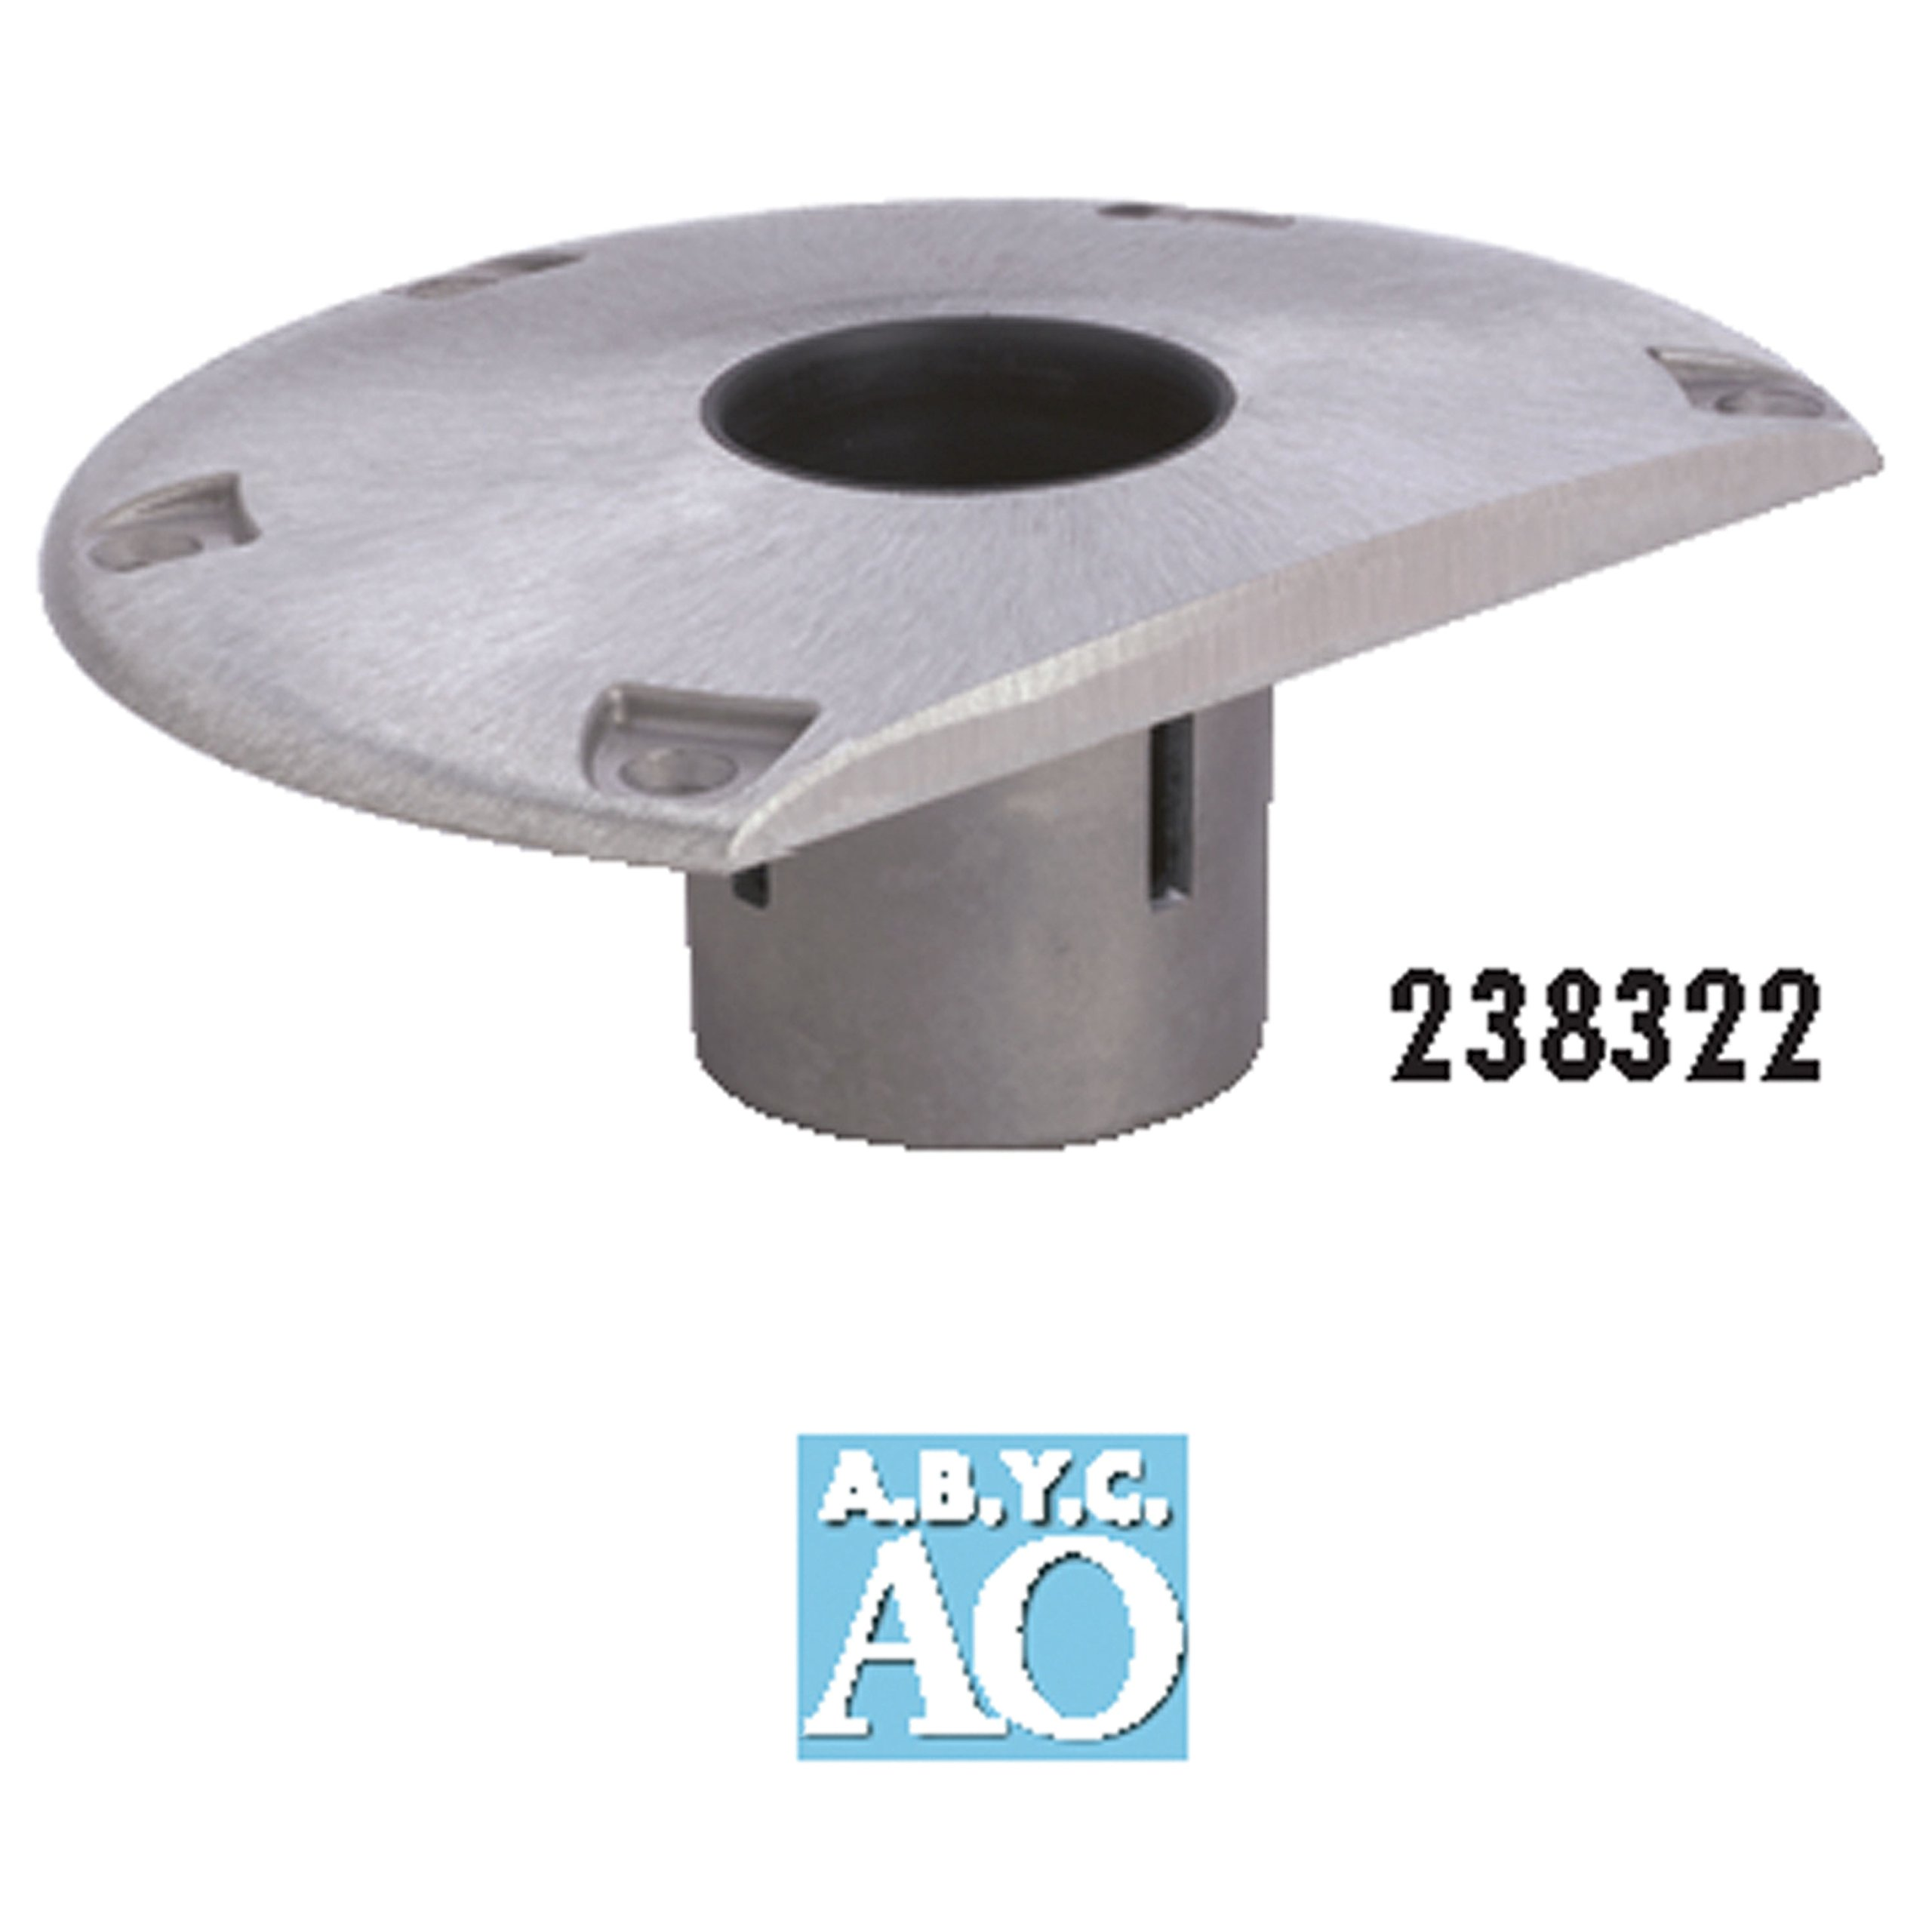 attwood 3003.3099 238322-1 238 Series Socket Base-Aluminum, 9'' D-Shaped by attwood